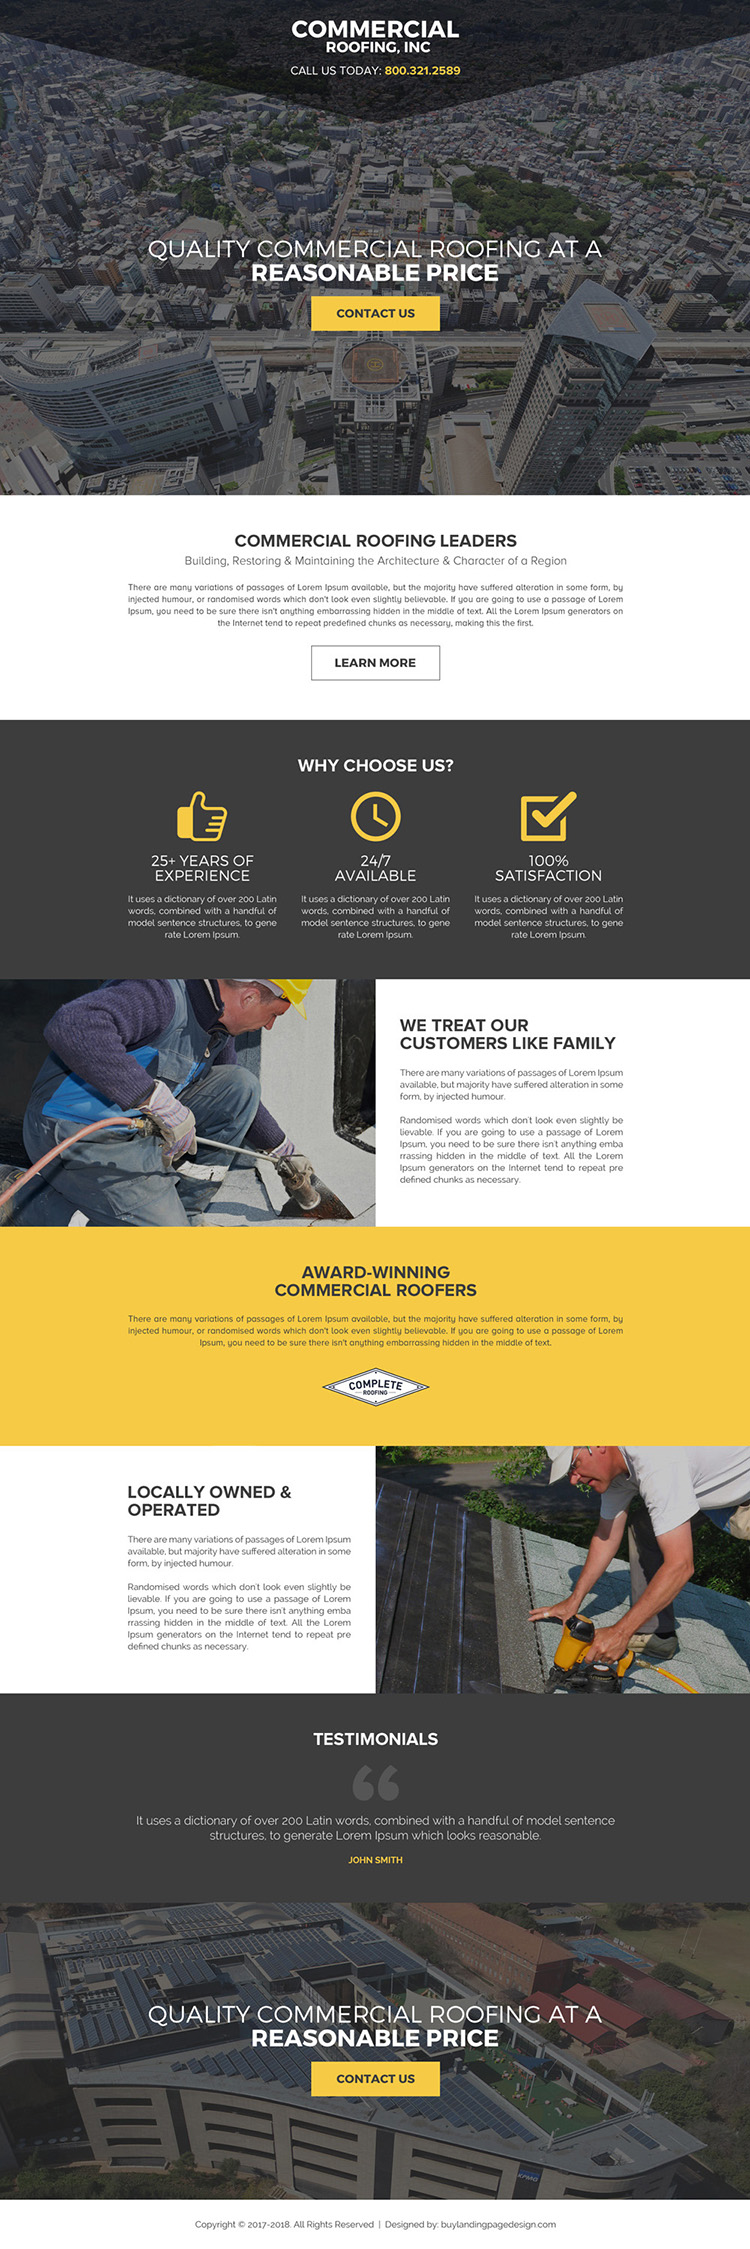 commercial roofing call to action landing page design